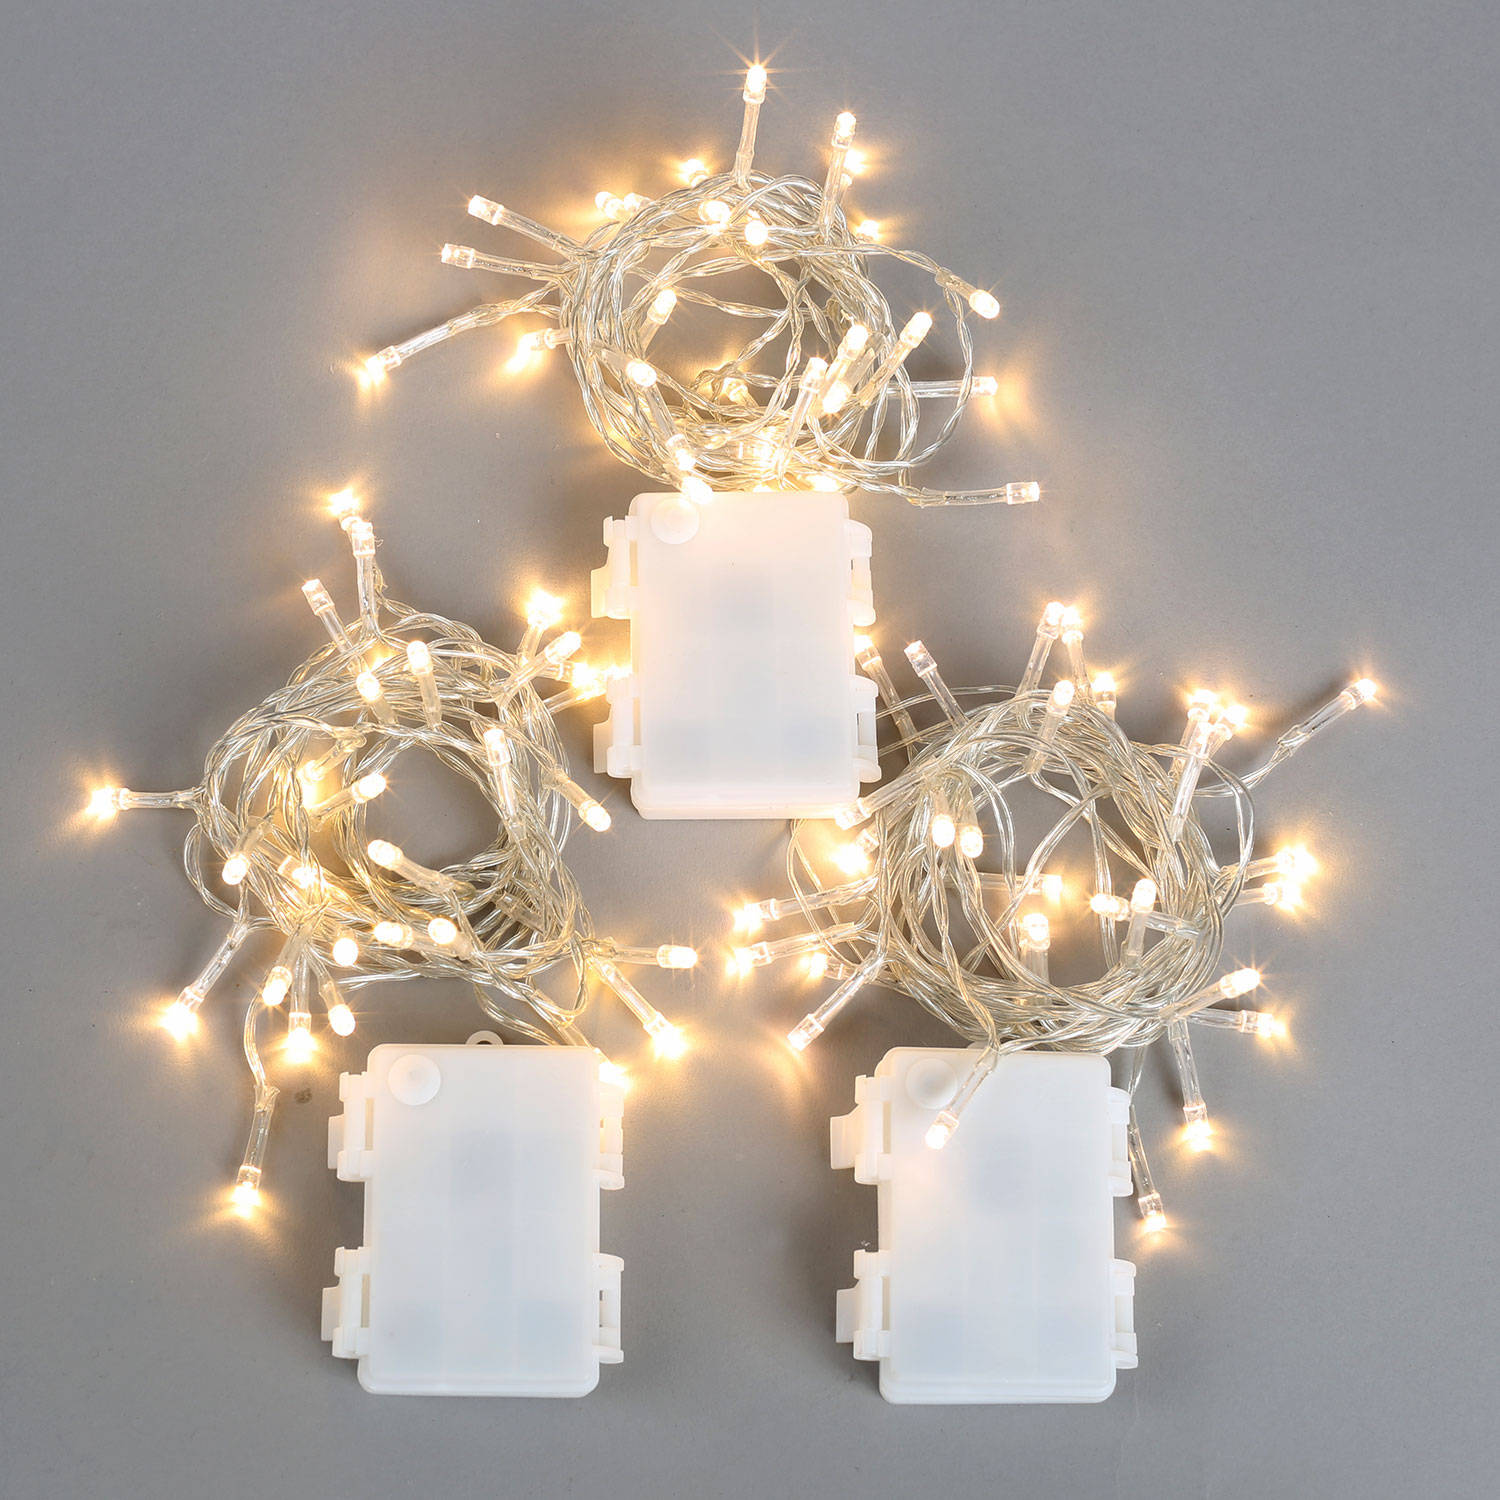 White String Christmas Lights Led : Lights.com Lit Decor String Lights Christmas Lights Extra Bright Warm White 30 LED ...